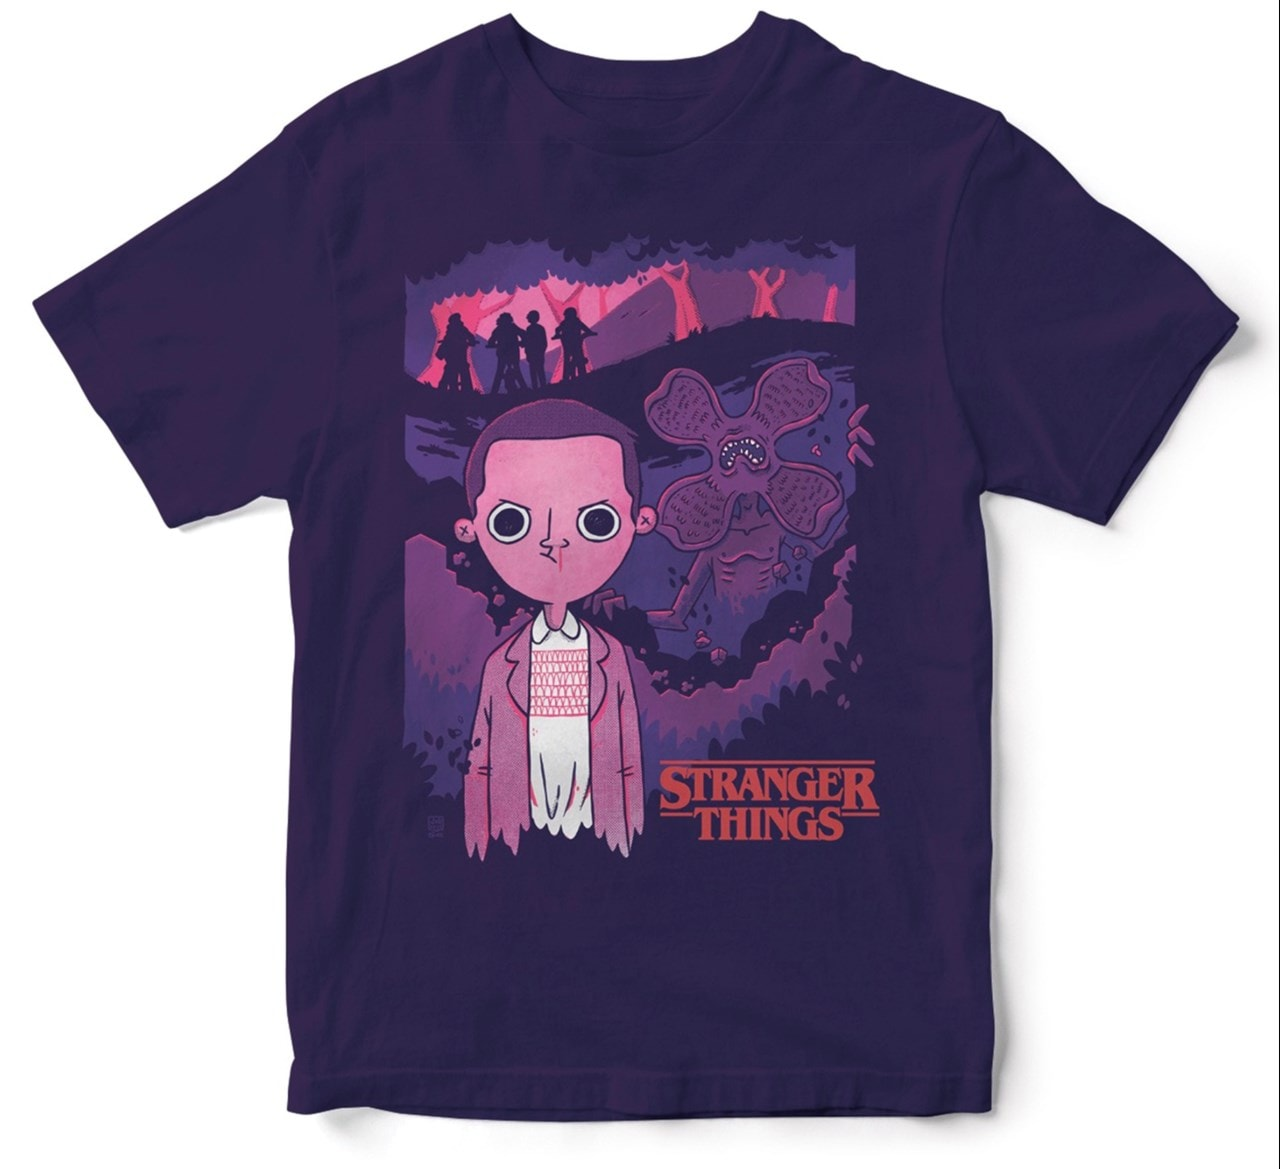 Stranger Things: Demo Toon (hmv Exclusive) (Large) - 1